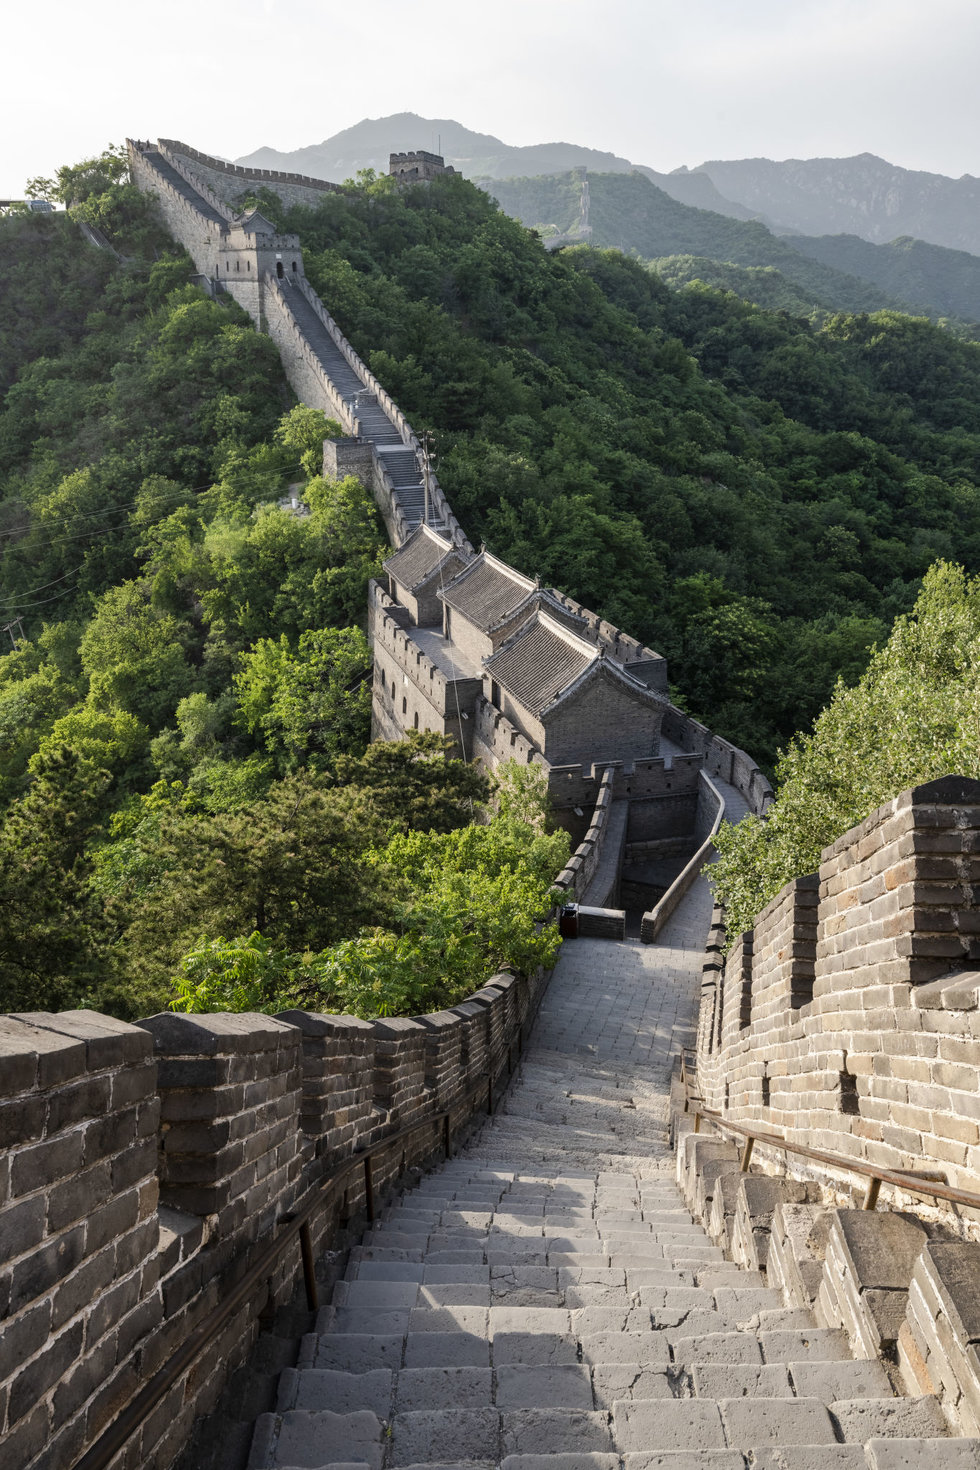 Three Perfect Days In Beijing Peak Tram Sky Pass Roundtrip Ride Terrace Anak 3 11 A Section Of The Great Wall Built More Than 400 Years Ago To Keep Out